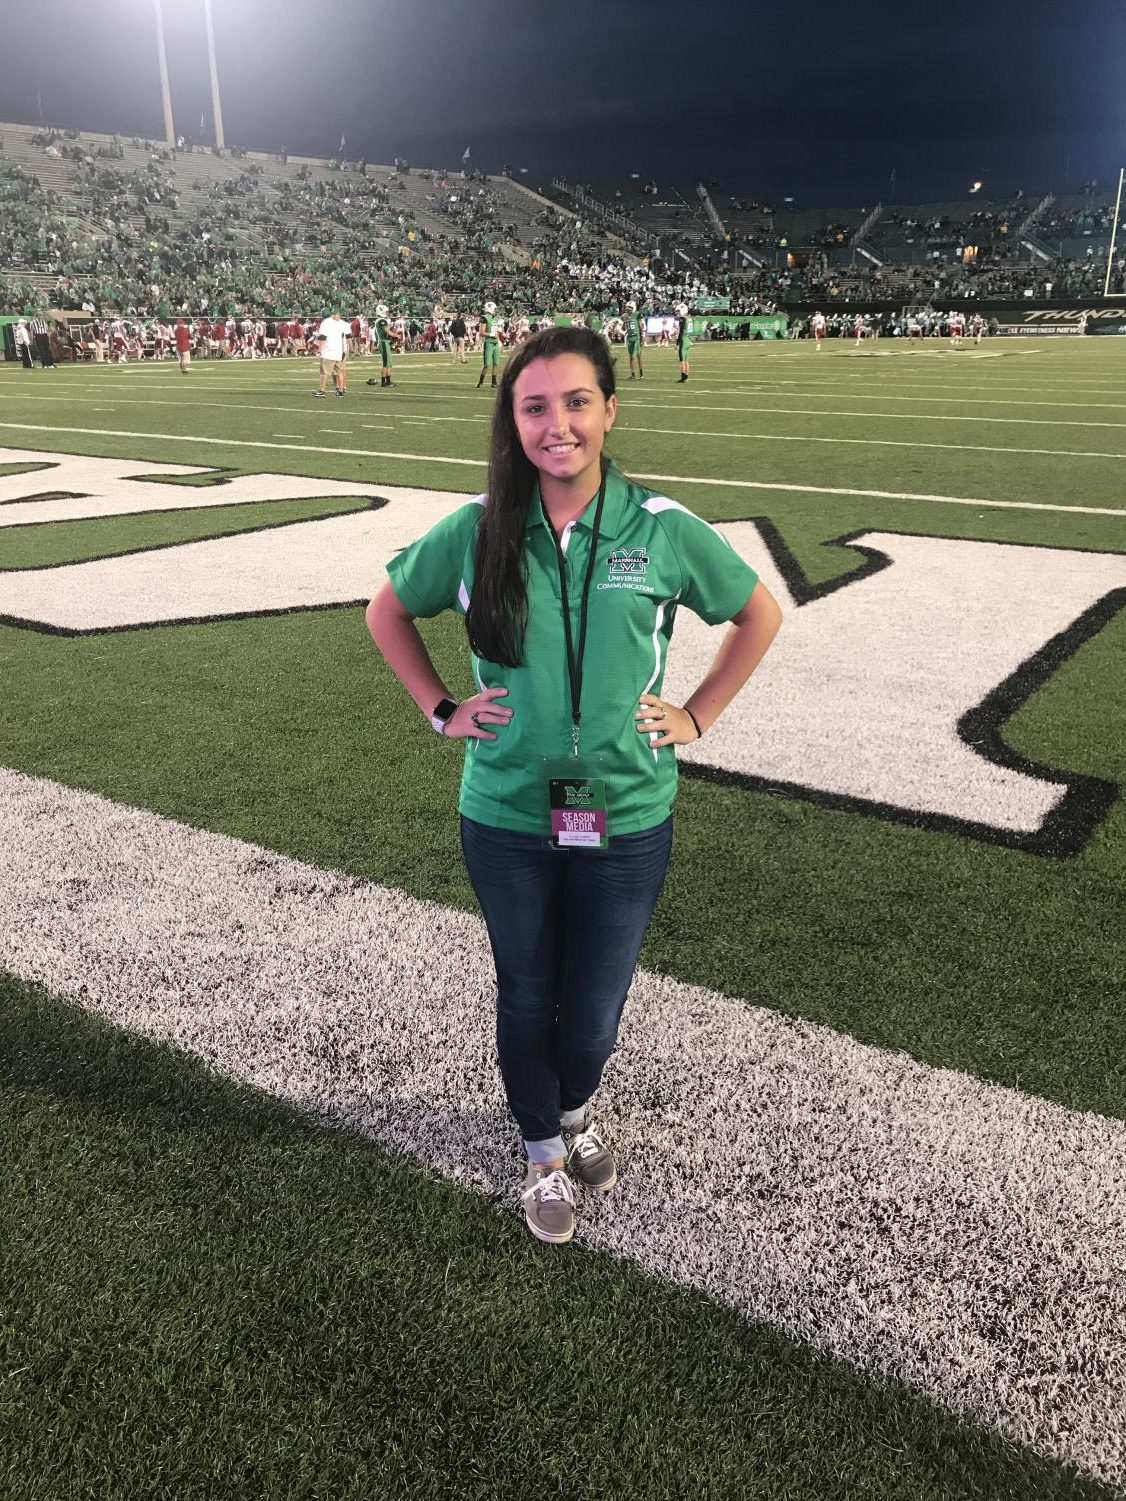 Sydney Shelton came to Marshall University two years ago excited for game day and now works in the press box.